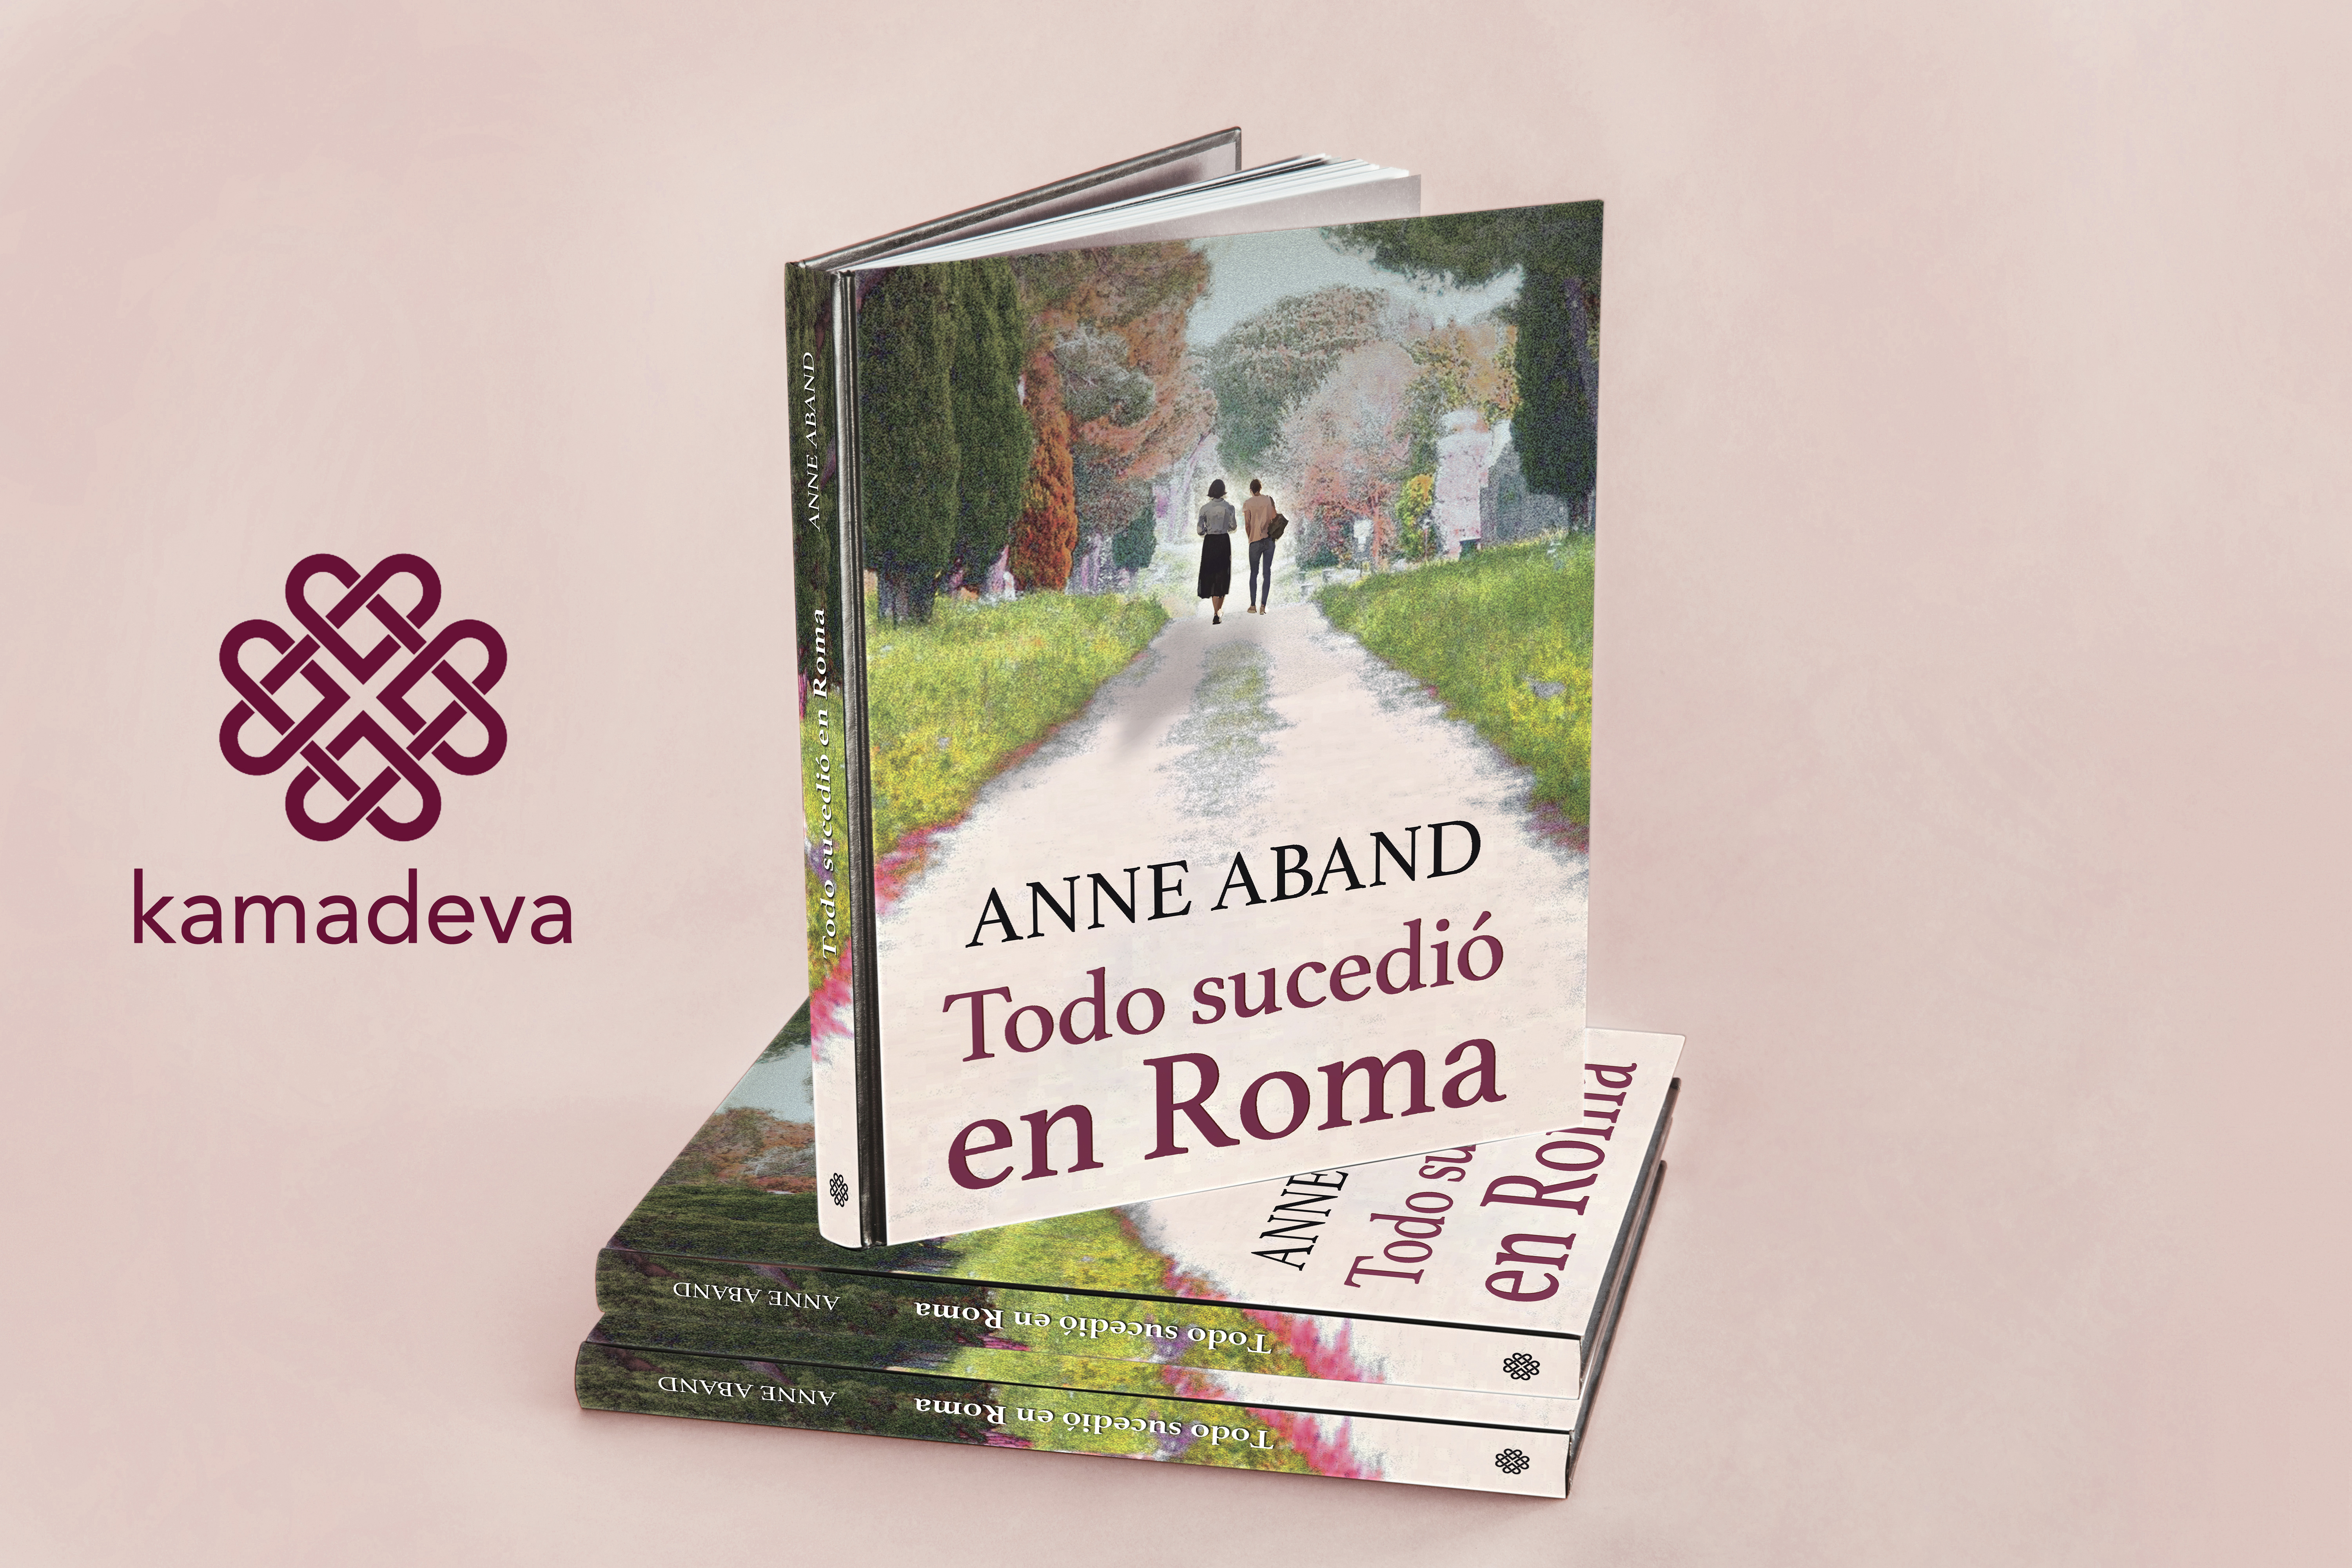 Entrevista a Anne Aband